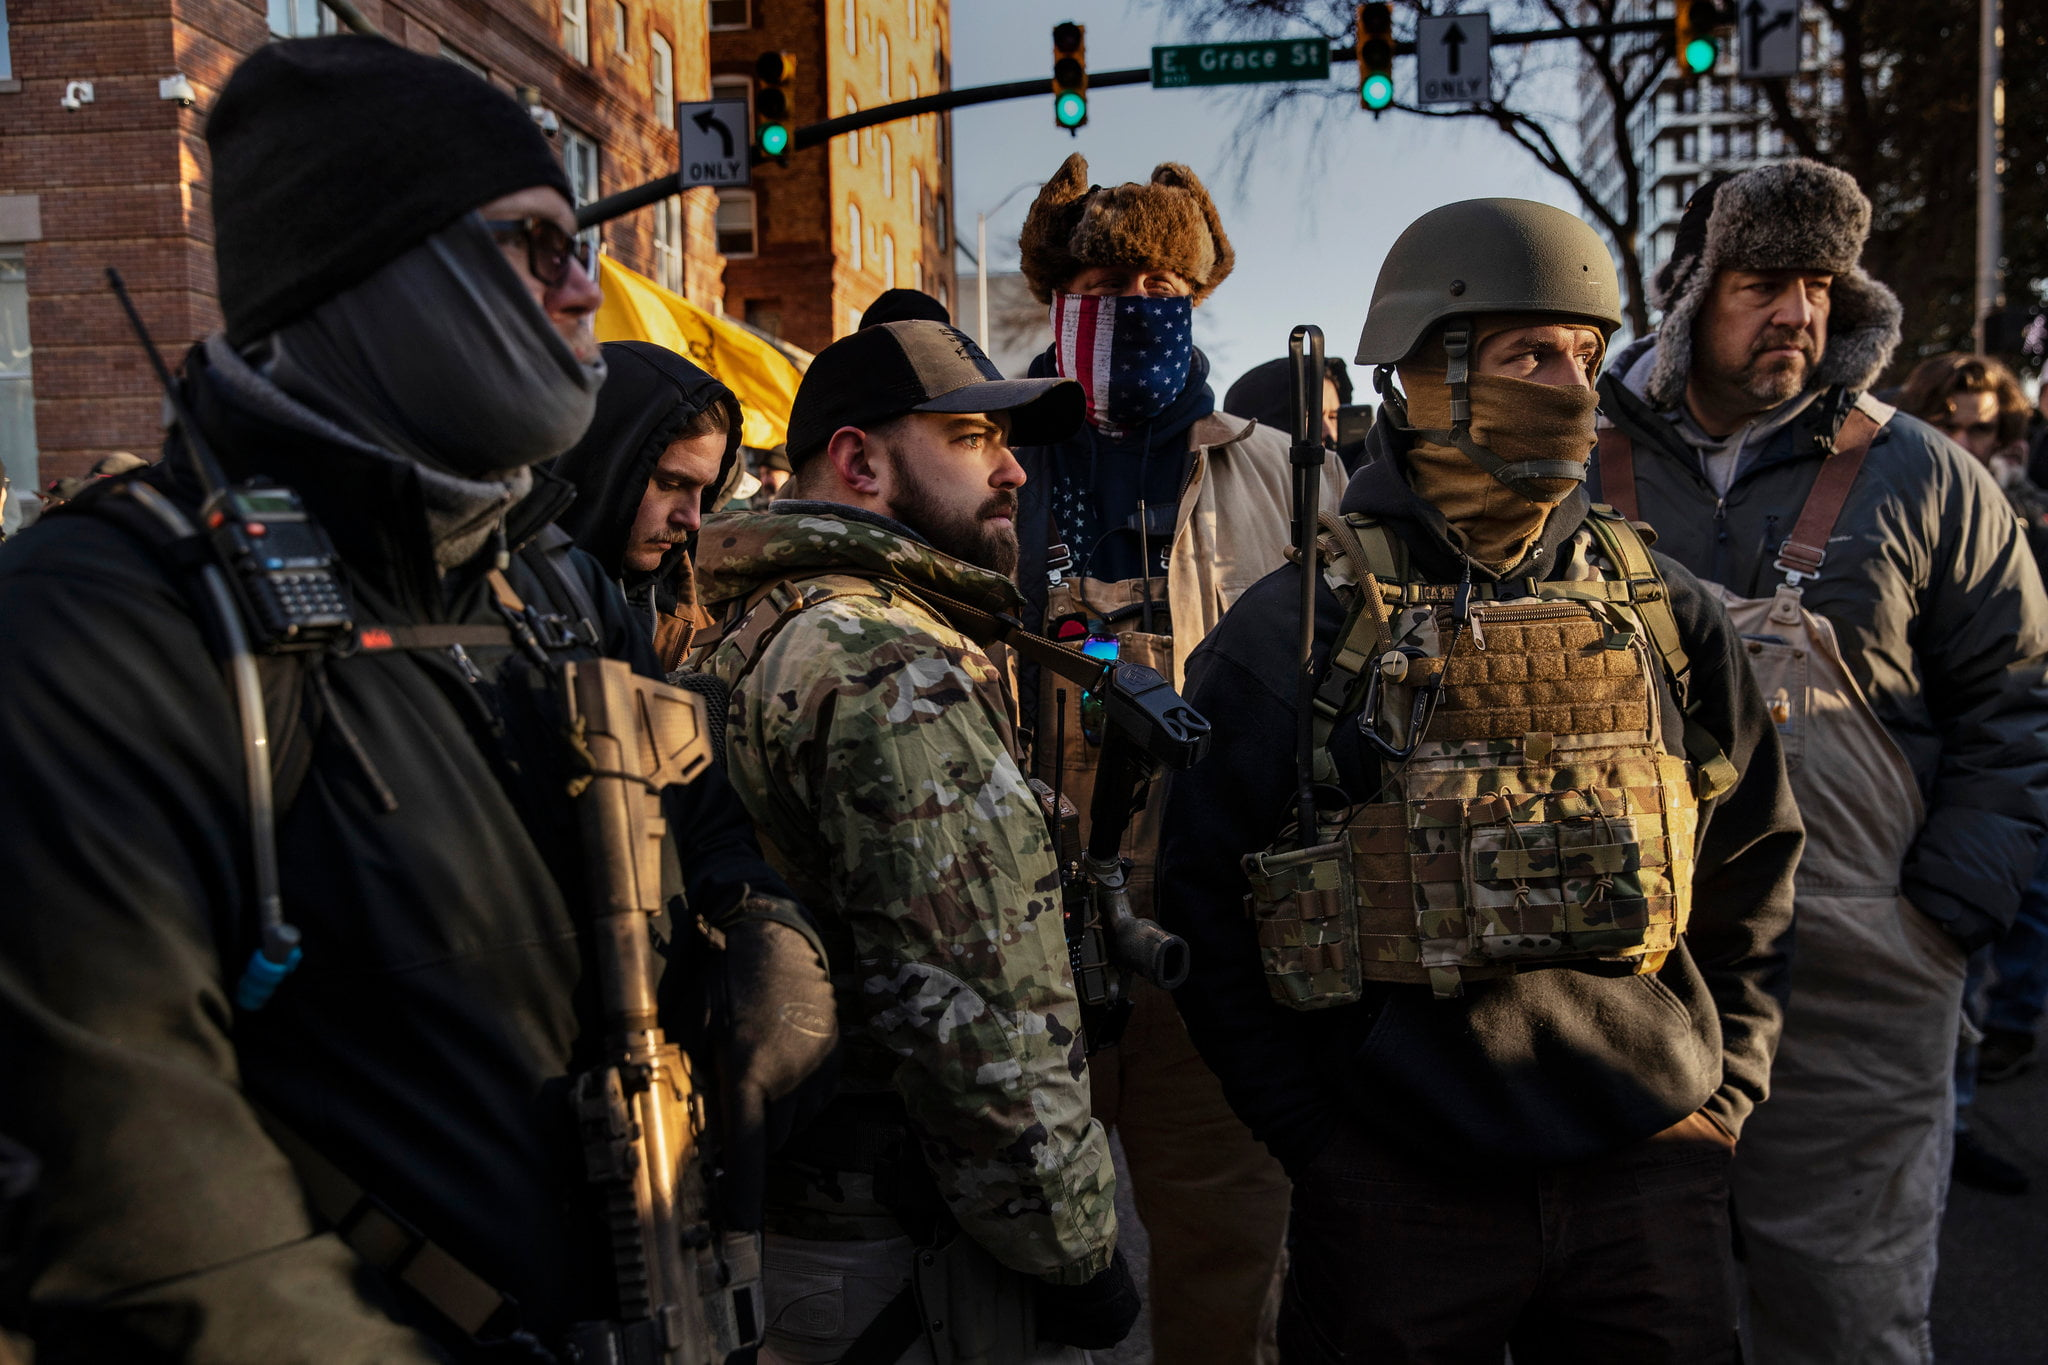 The White House warns that the security forces' response to protests in Portland should be tightened